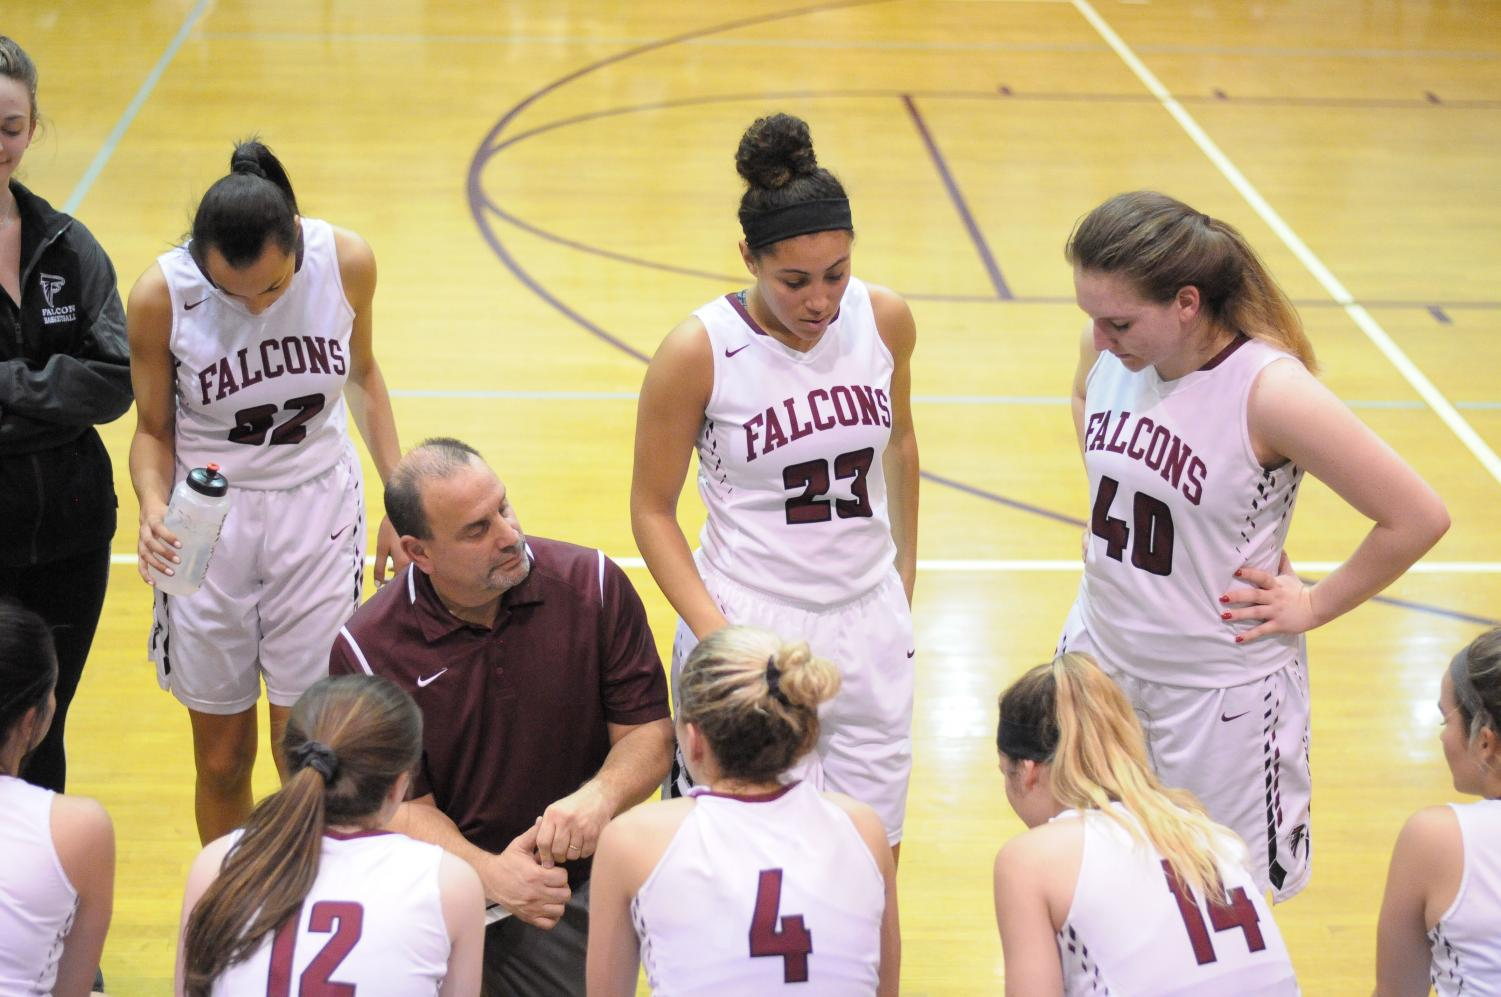 Head Varsity Girls Basketball coach Matt Joseph critiques his team's gameplay during a timeout during the 2017-2018 season.